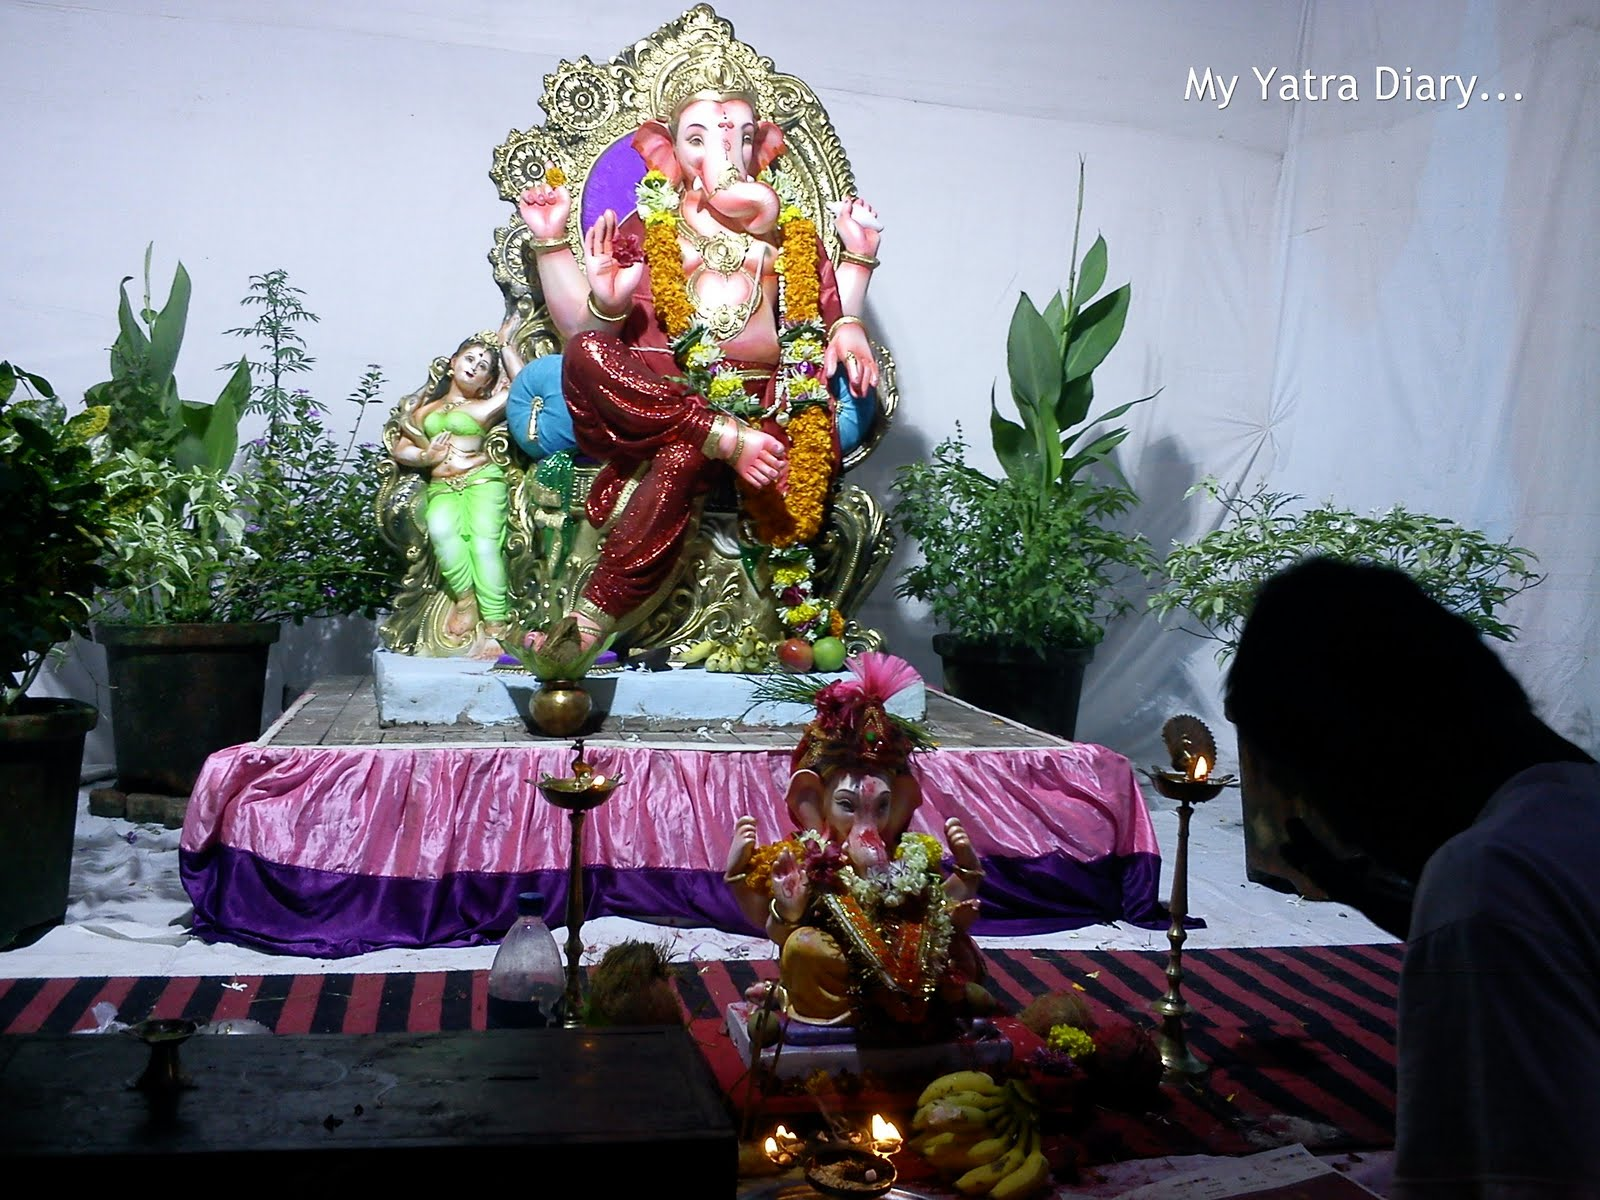 Ganesh chaturthi flowers may flower blog - Ganesh Pandal Decorated With Flowers And Plants In Mumbai